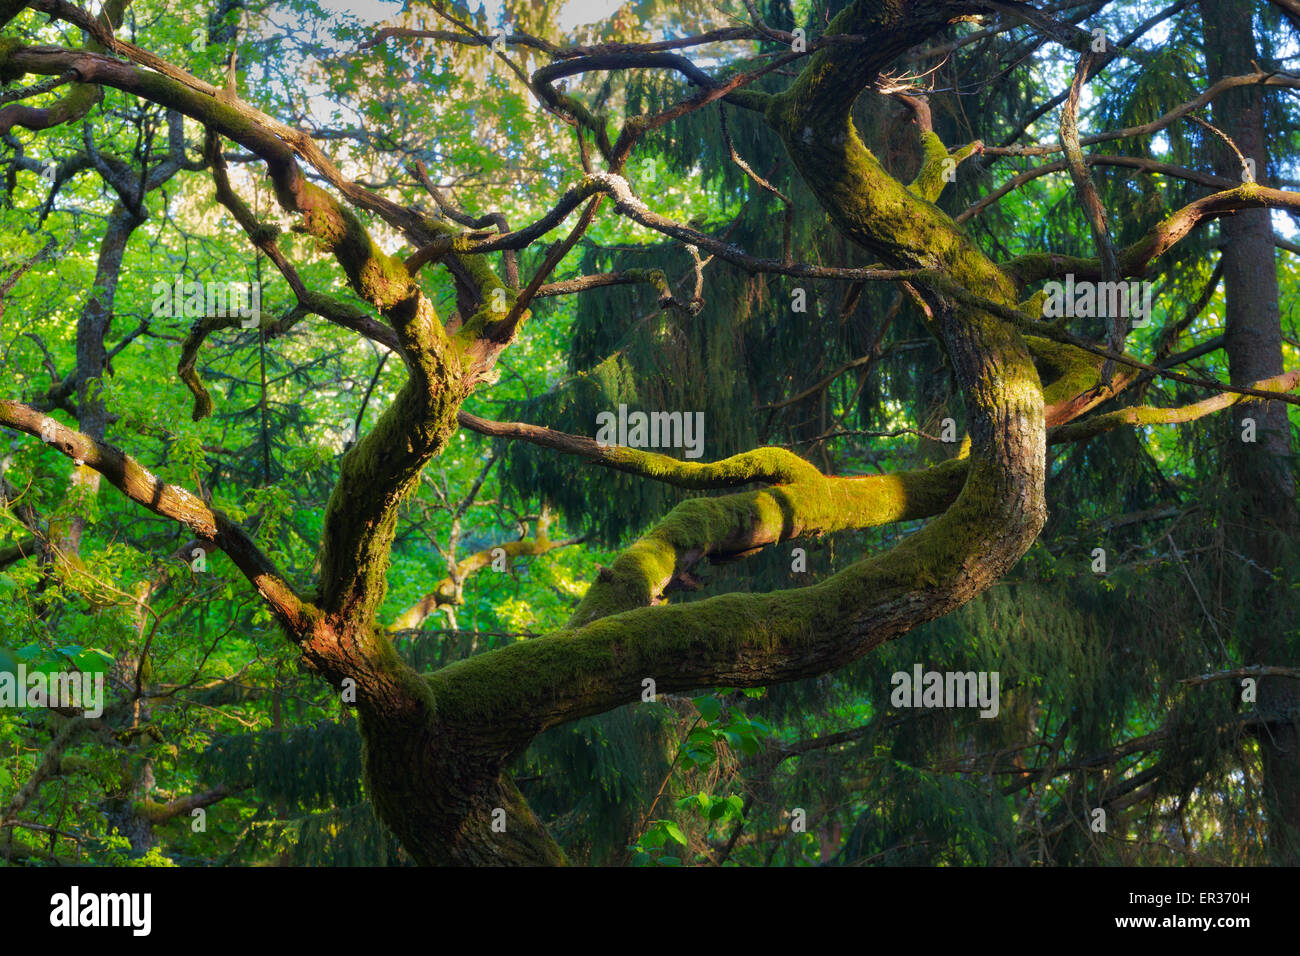 Curved branches - Stock Image